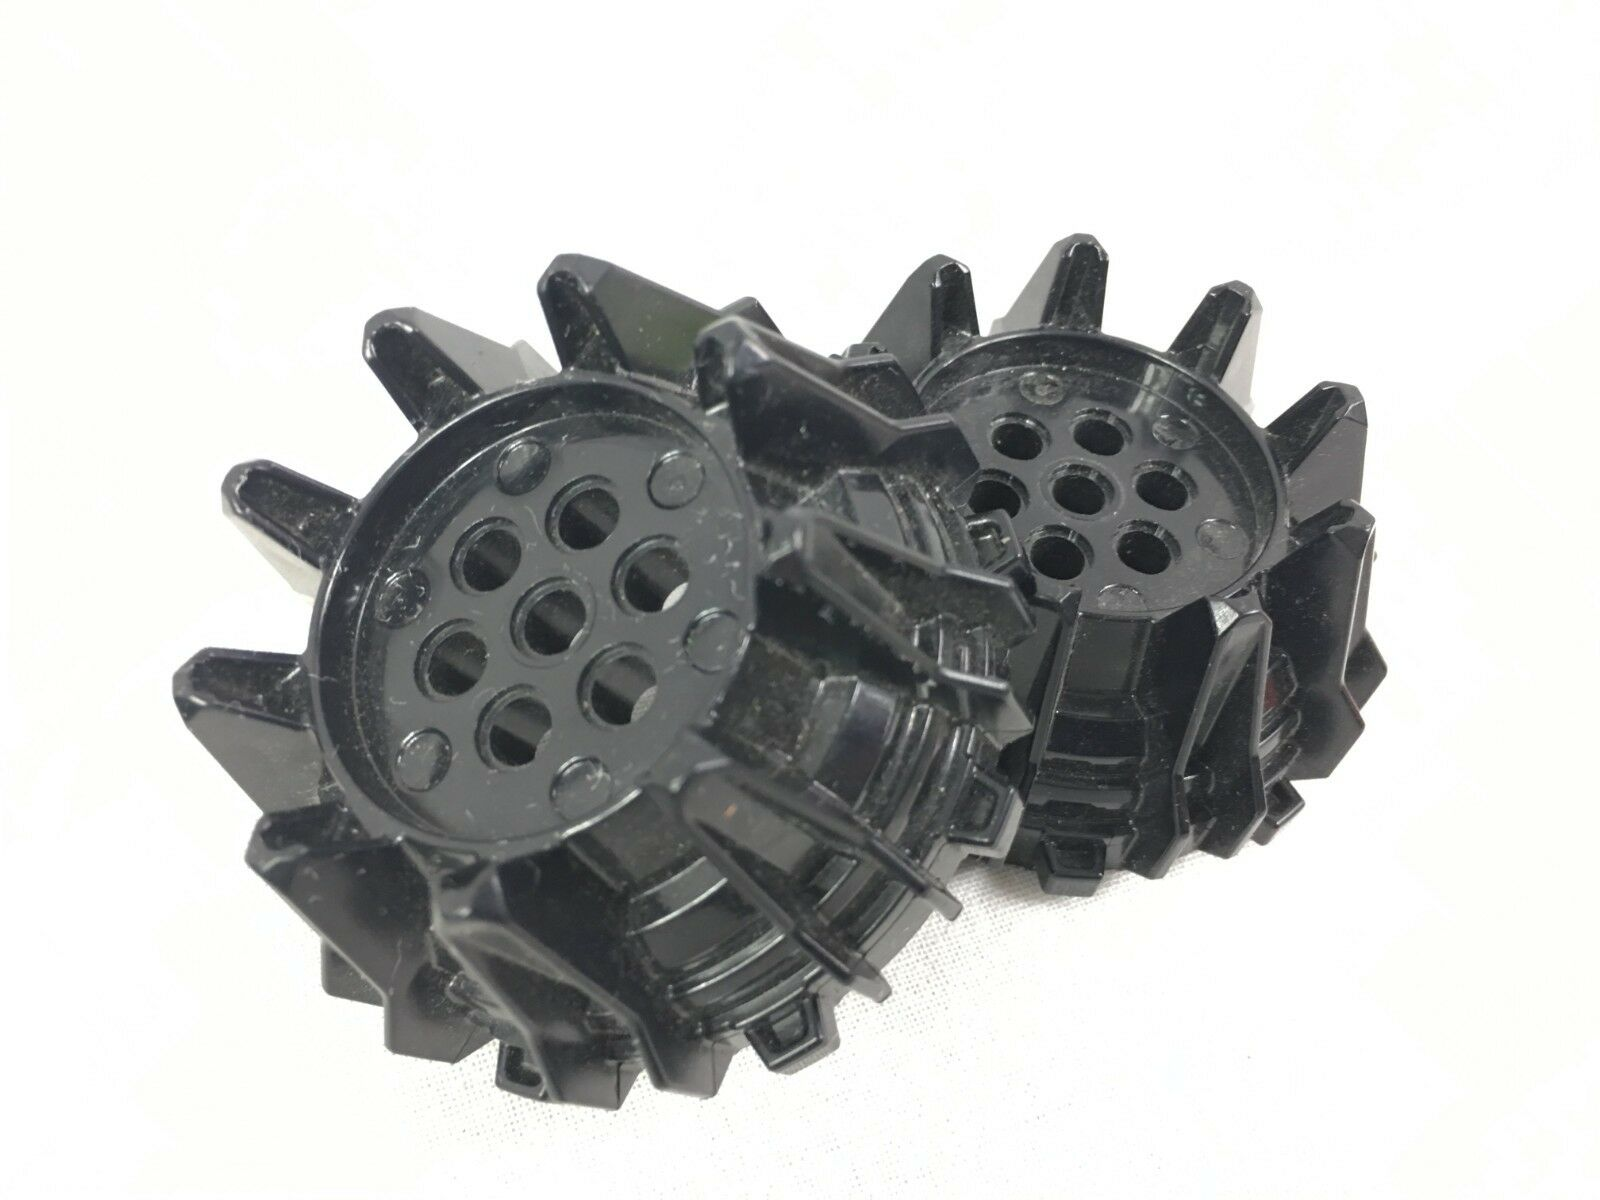 Set of 2 Large Black Wheels with Cleats /& Flanges Lego Parts 64712 Set 70321